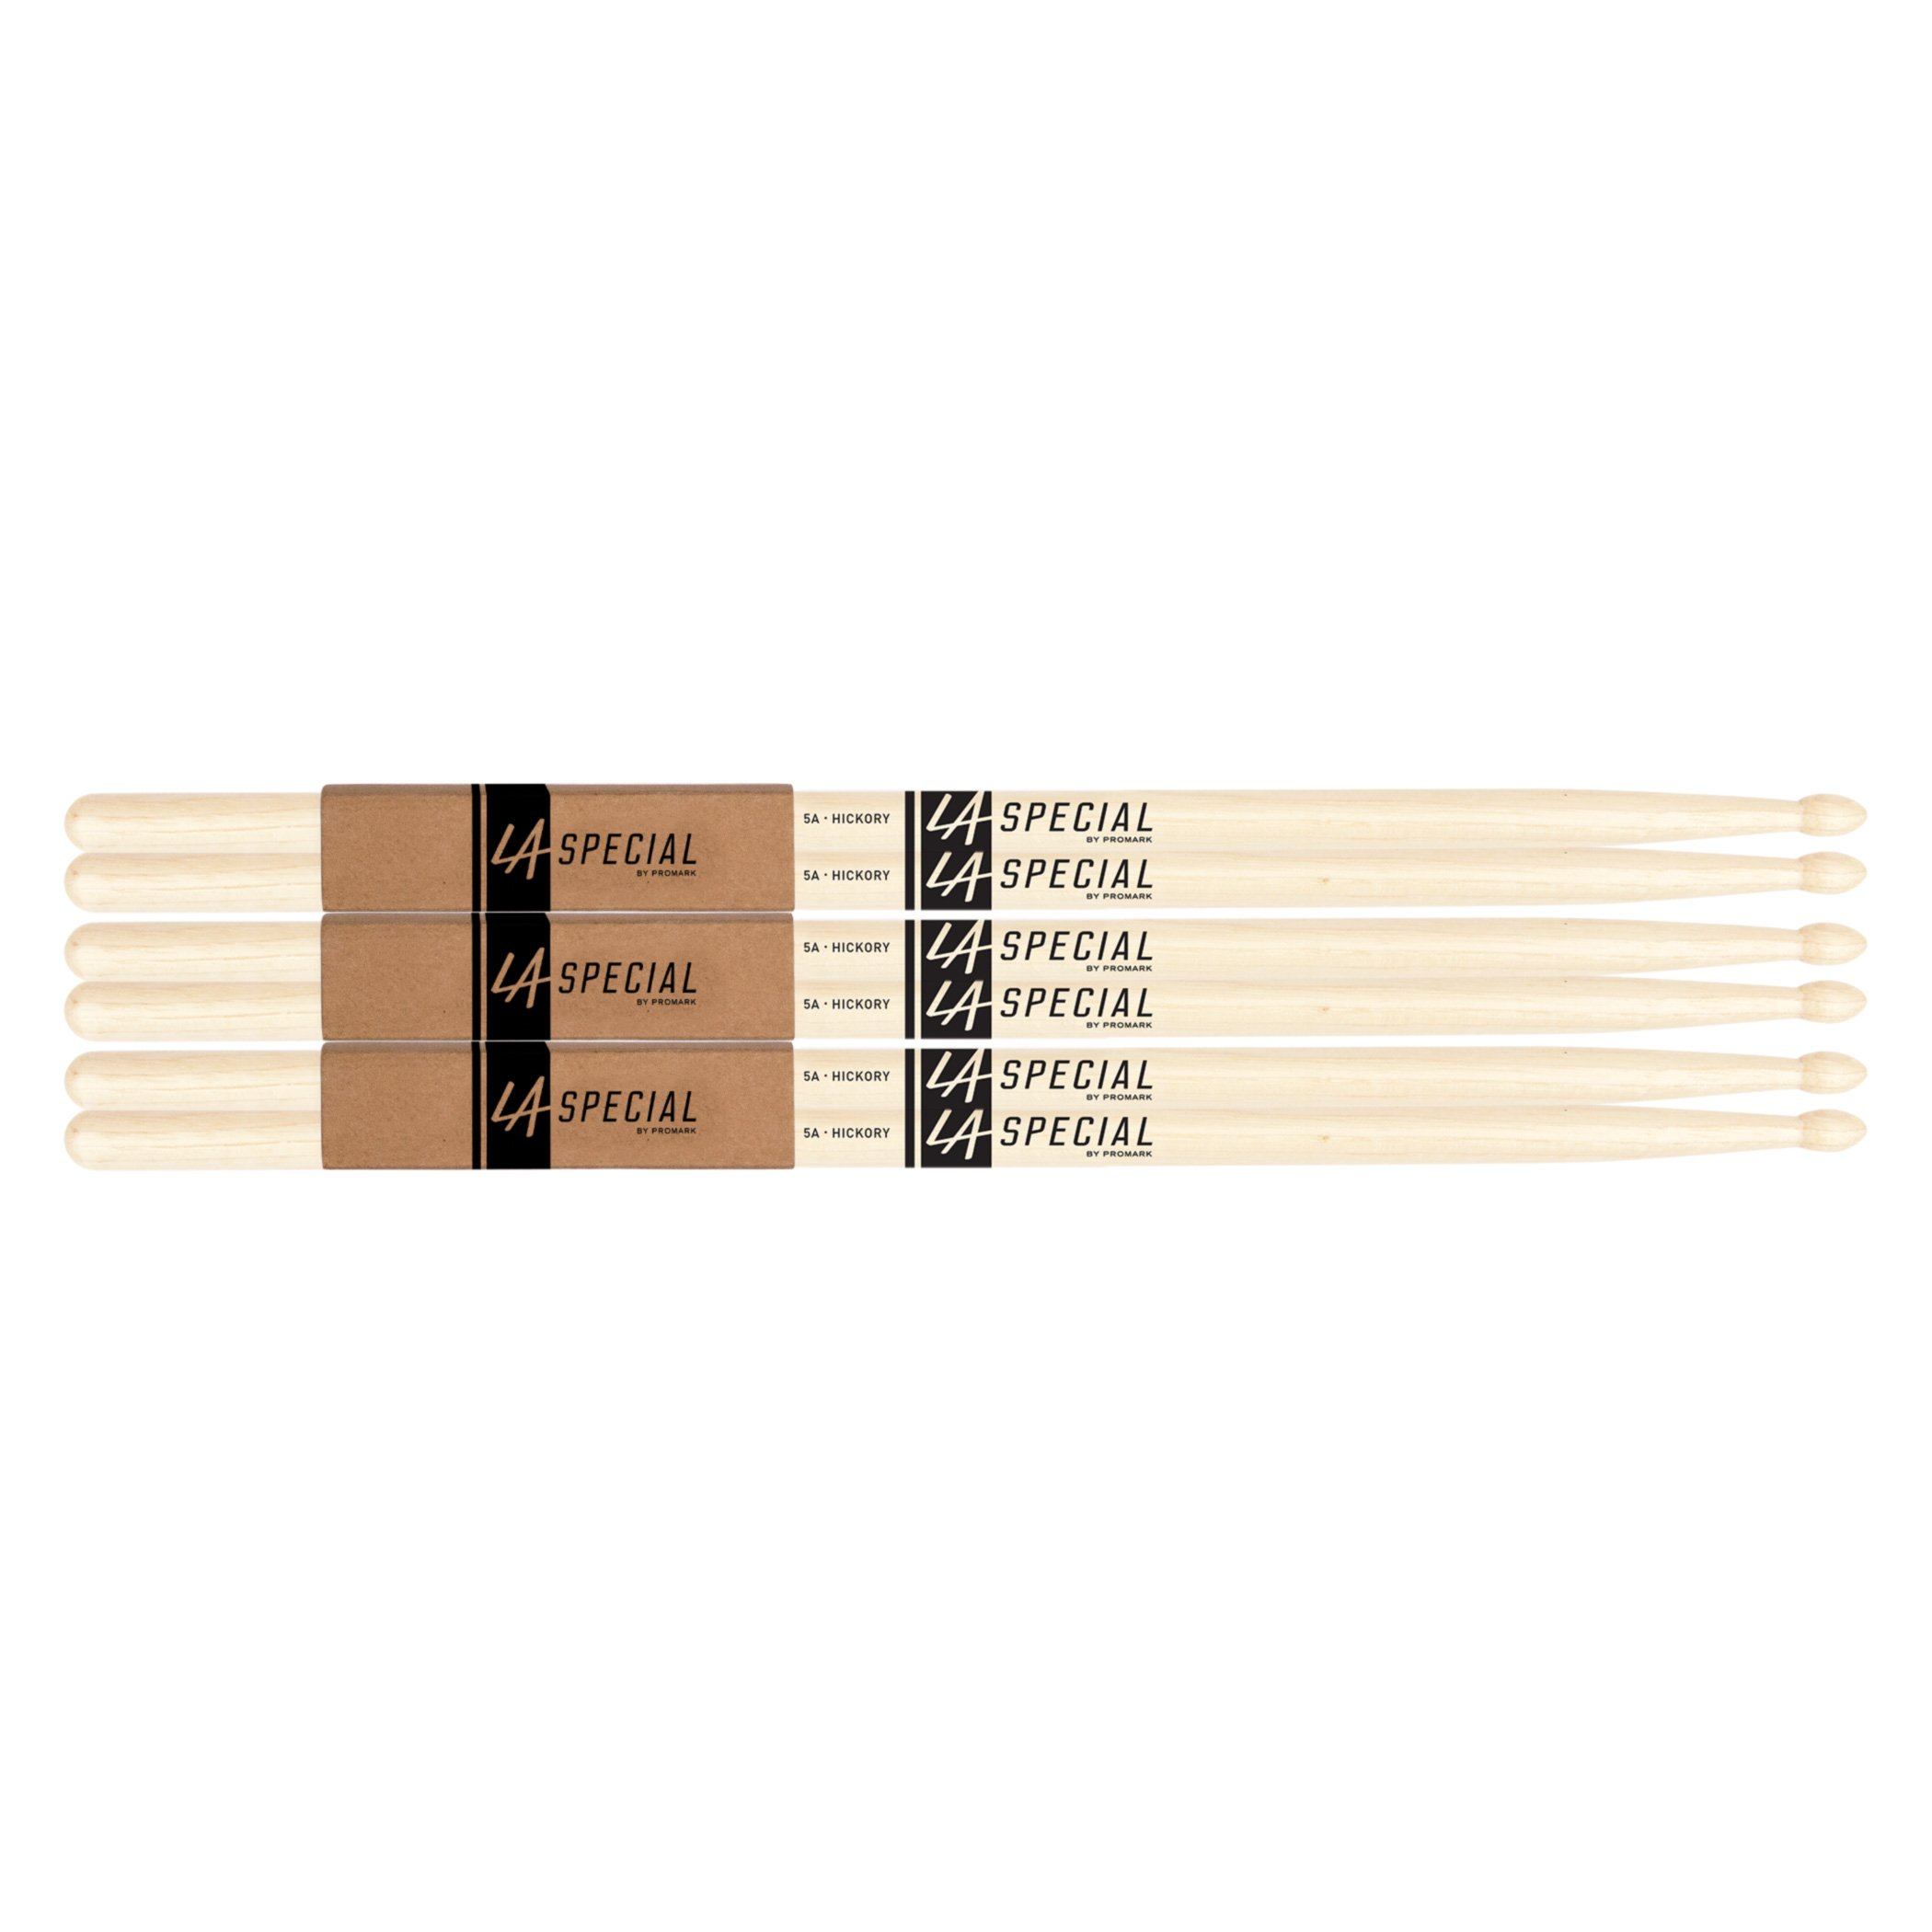 LA Specials by Promark 5A Hickory Drumsticks, 3-pack